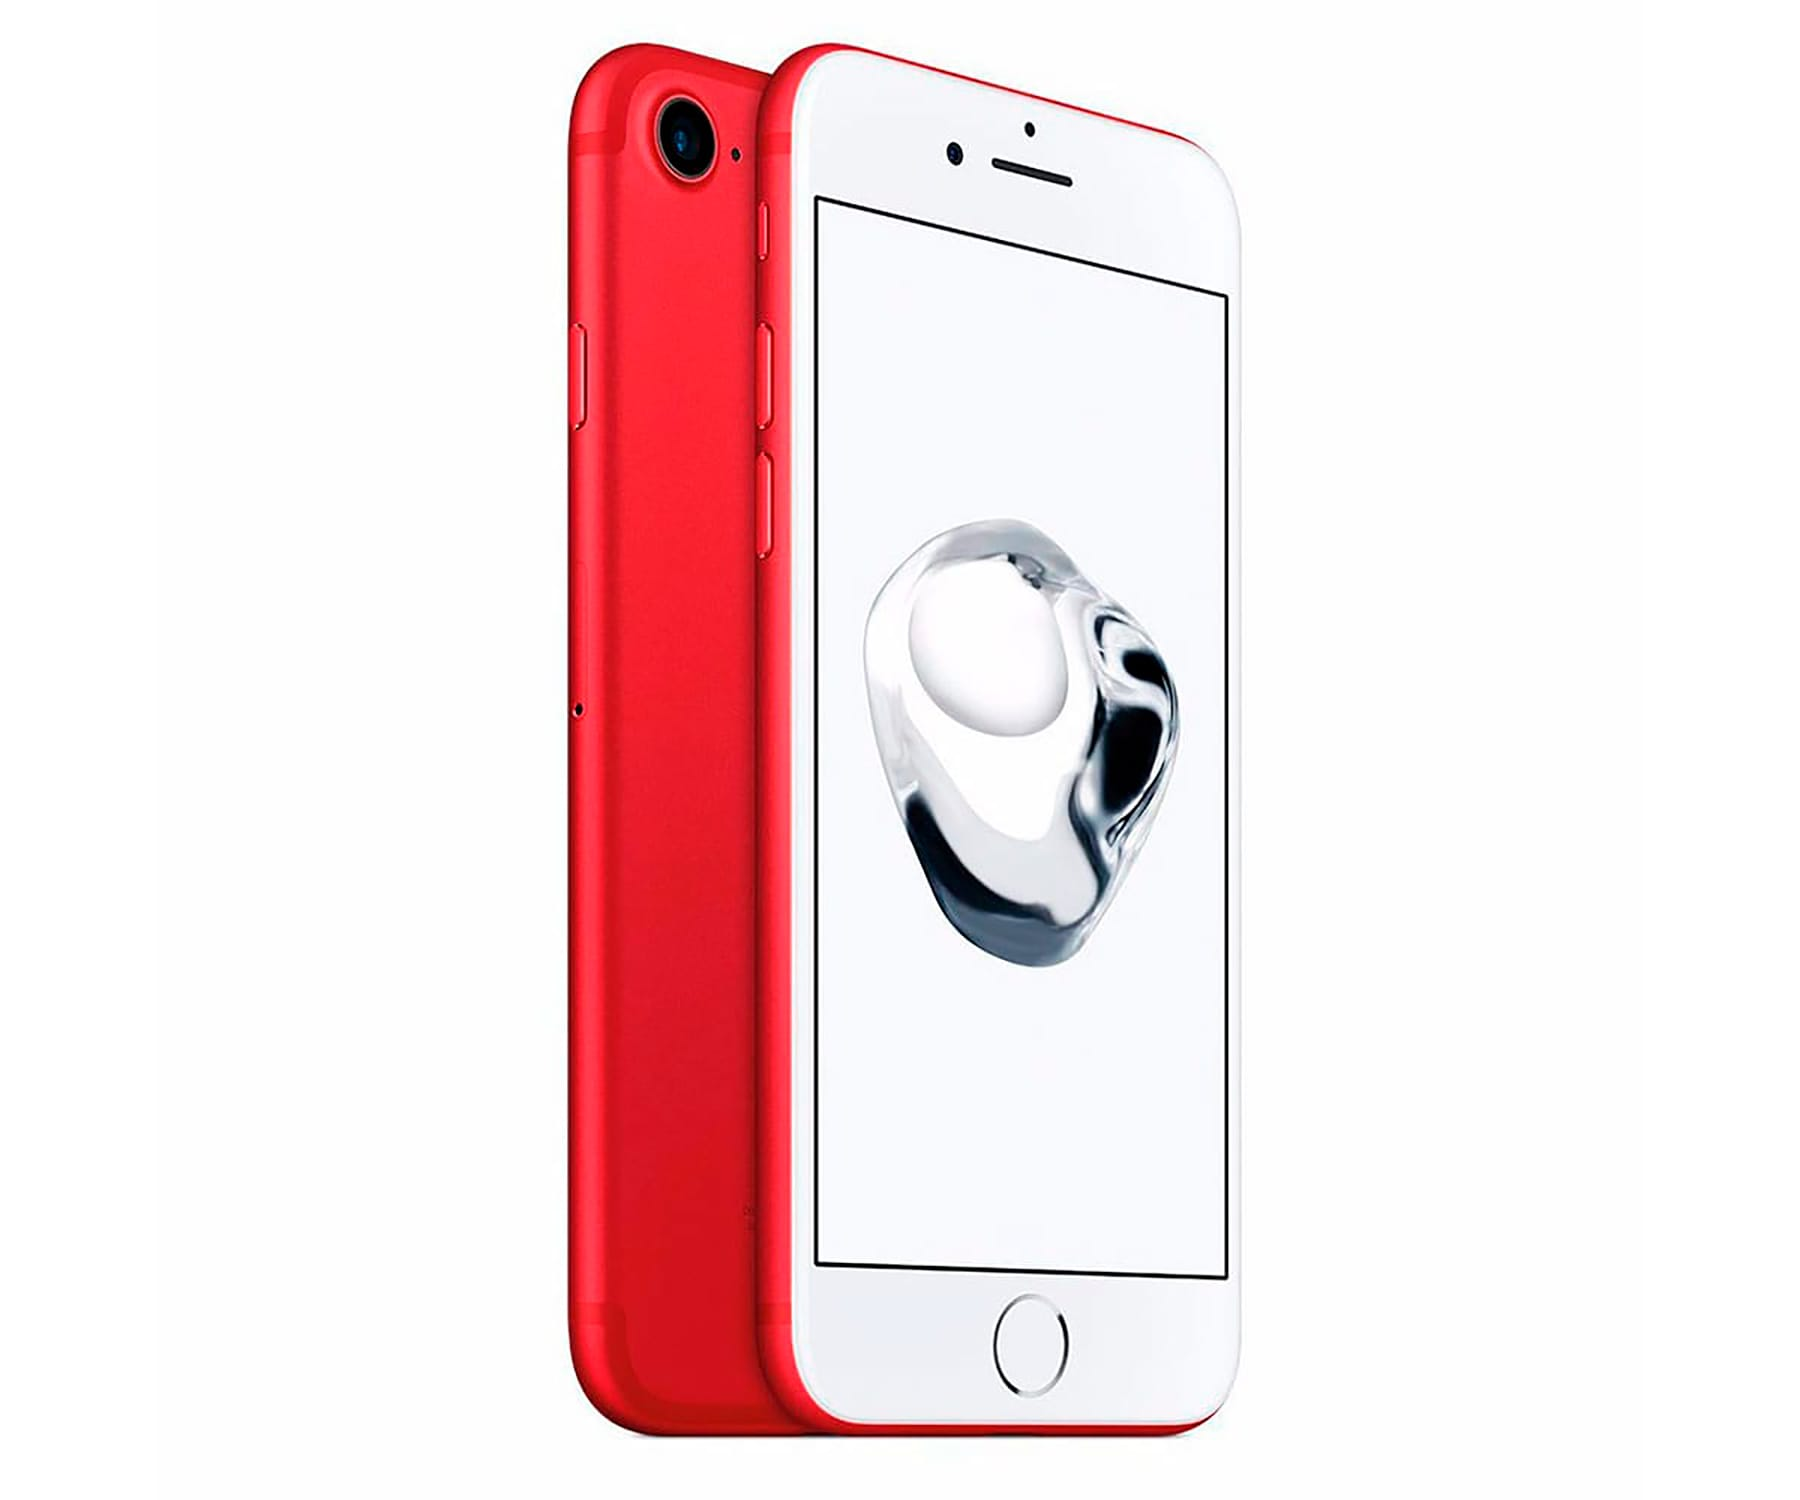 APPLE IPHONE 7 128GB ROJO REACONDICIONADO CPO MÓVIL 4G 4.7 RETINA HD/4CORE/128GB/2GB RAM/12MP/7MP